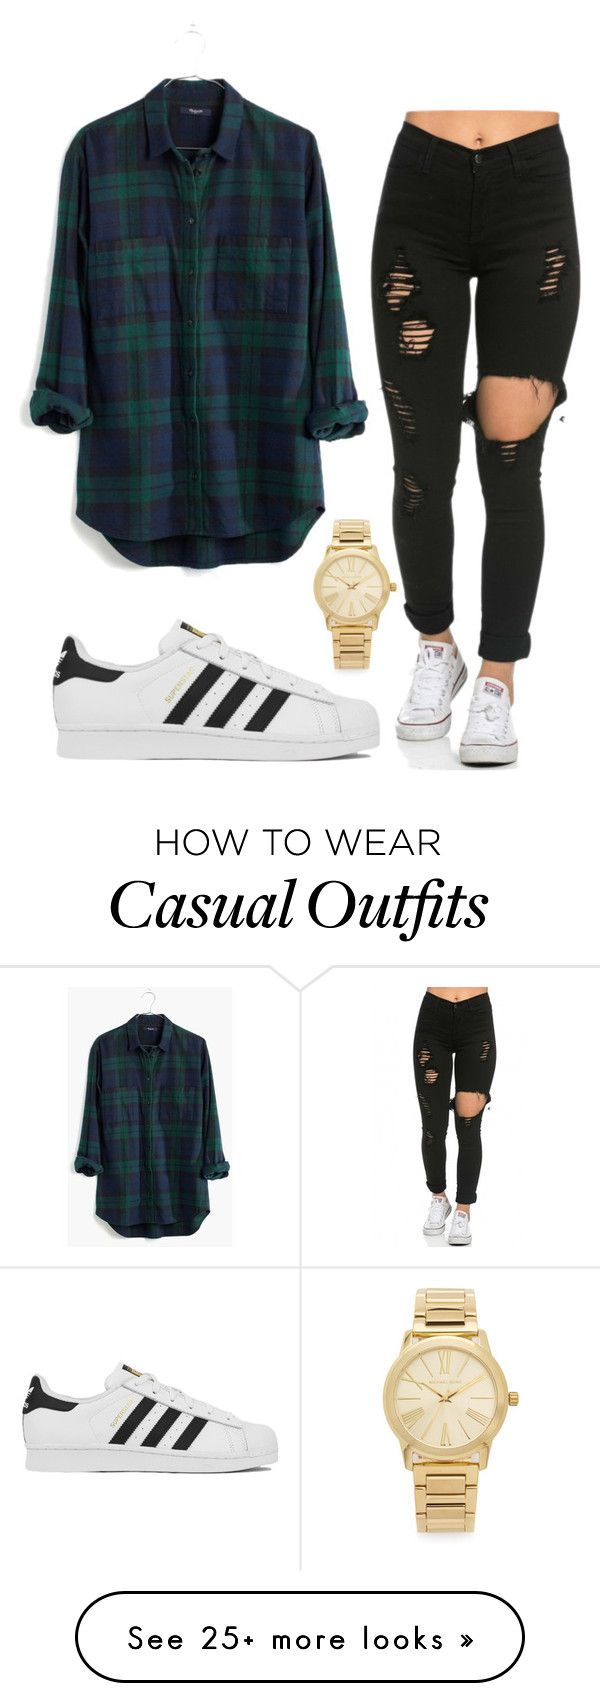 """casual and beautiful Yes or no?"" by ruthjauregui on Polyvore featuring Michael Kors, Madewell and adidas"